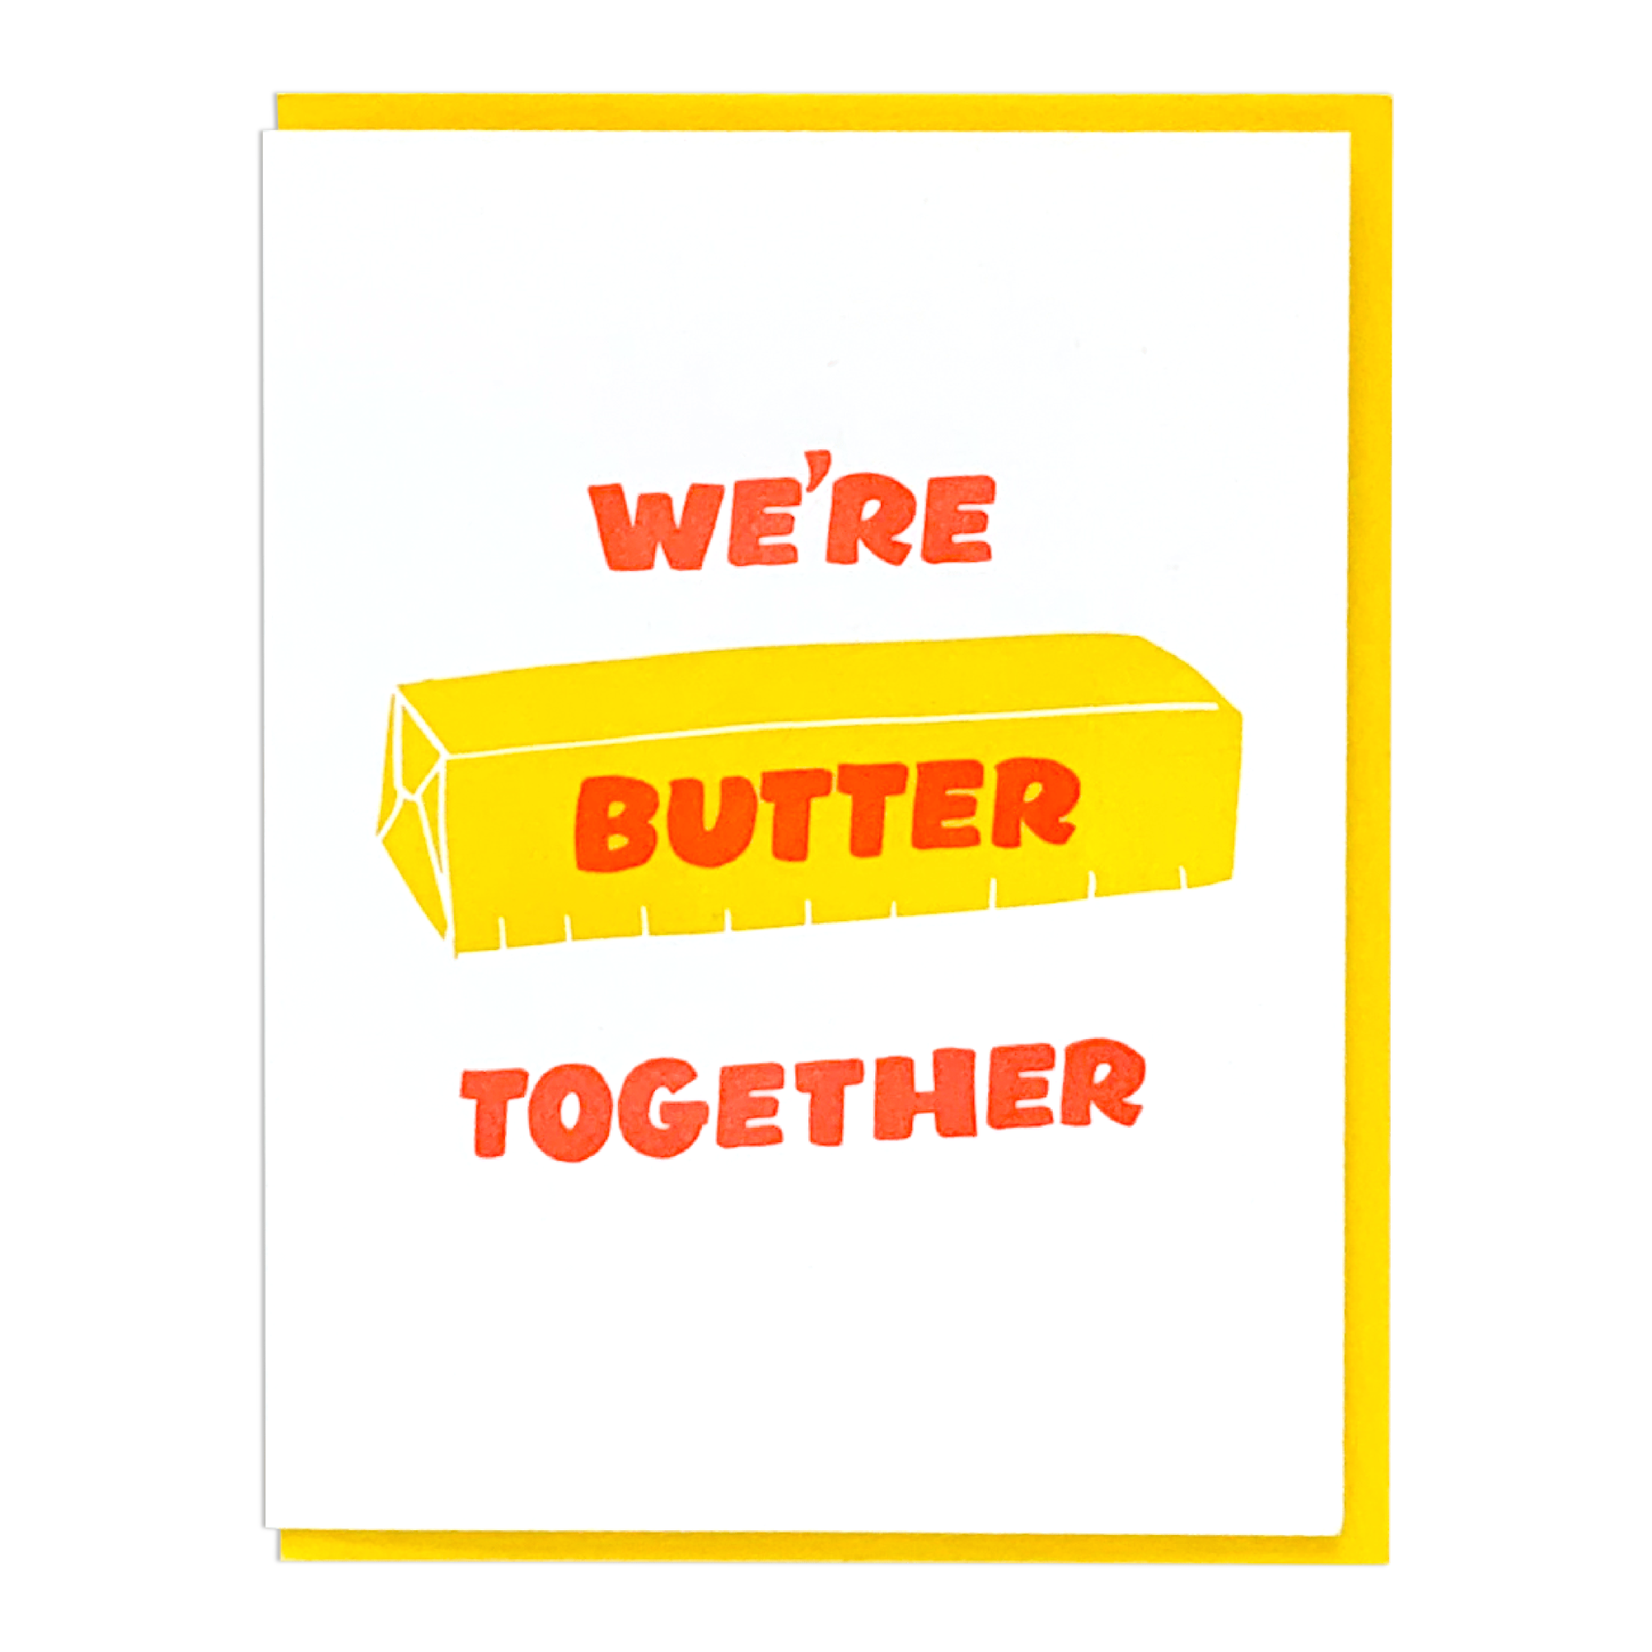 And Here We Are And Here We Are Butter Together